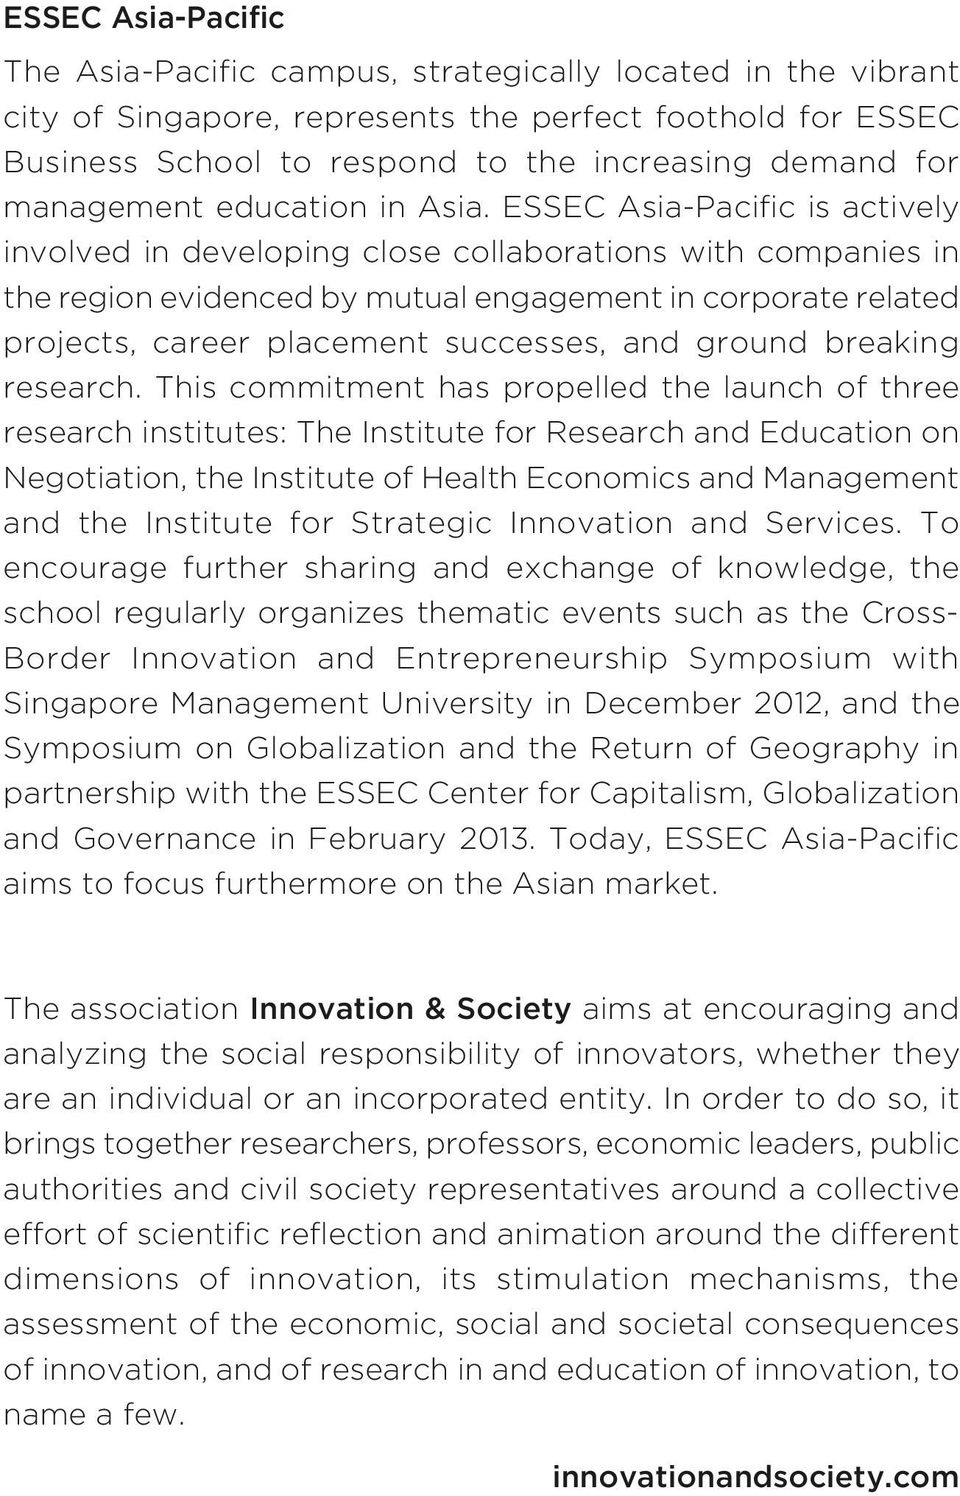 ESSEC Asia-Pacific is actively involved in developing close collaborations with companies in the region evidenced by mutual engagement in corporate related projects, career placement successes, and